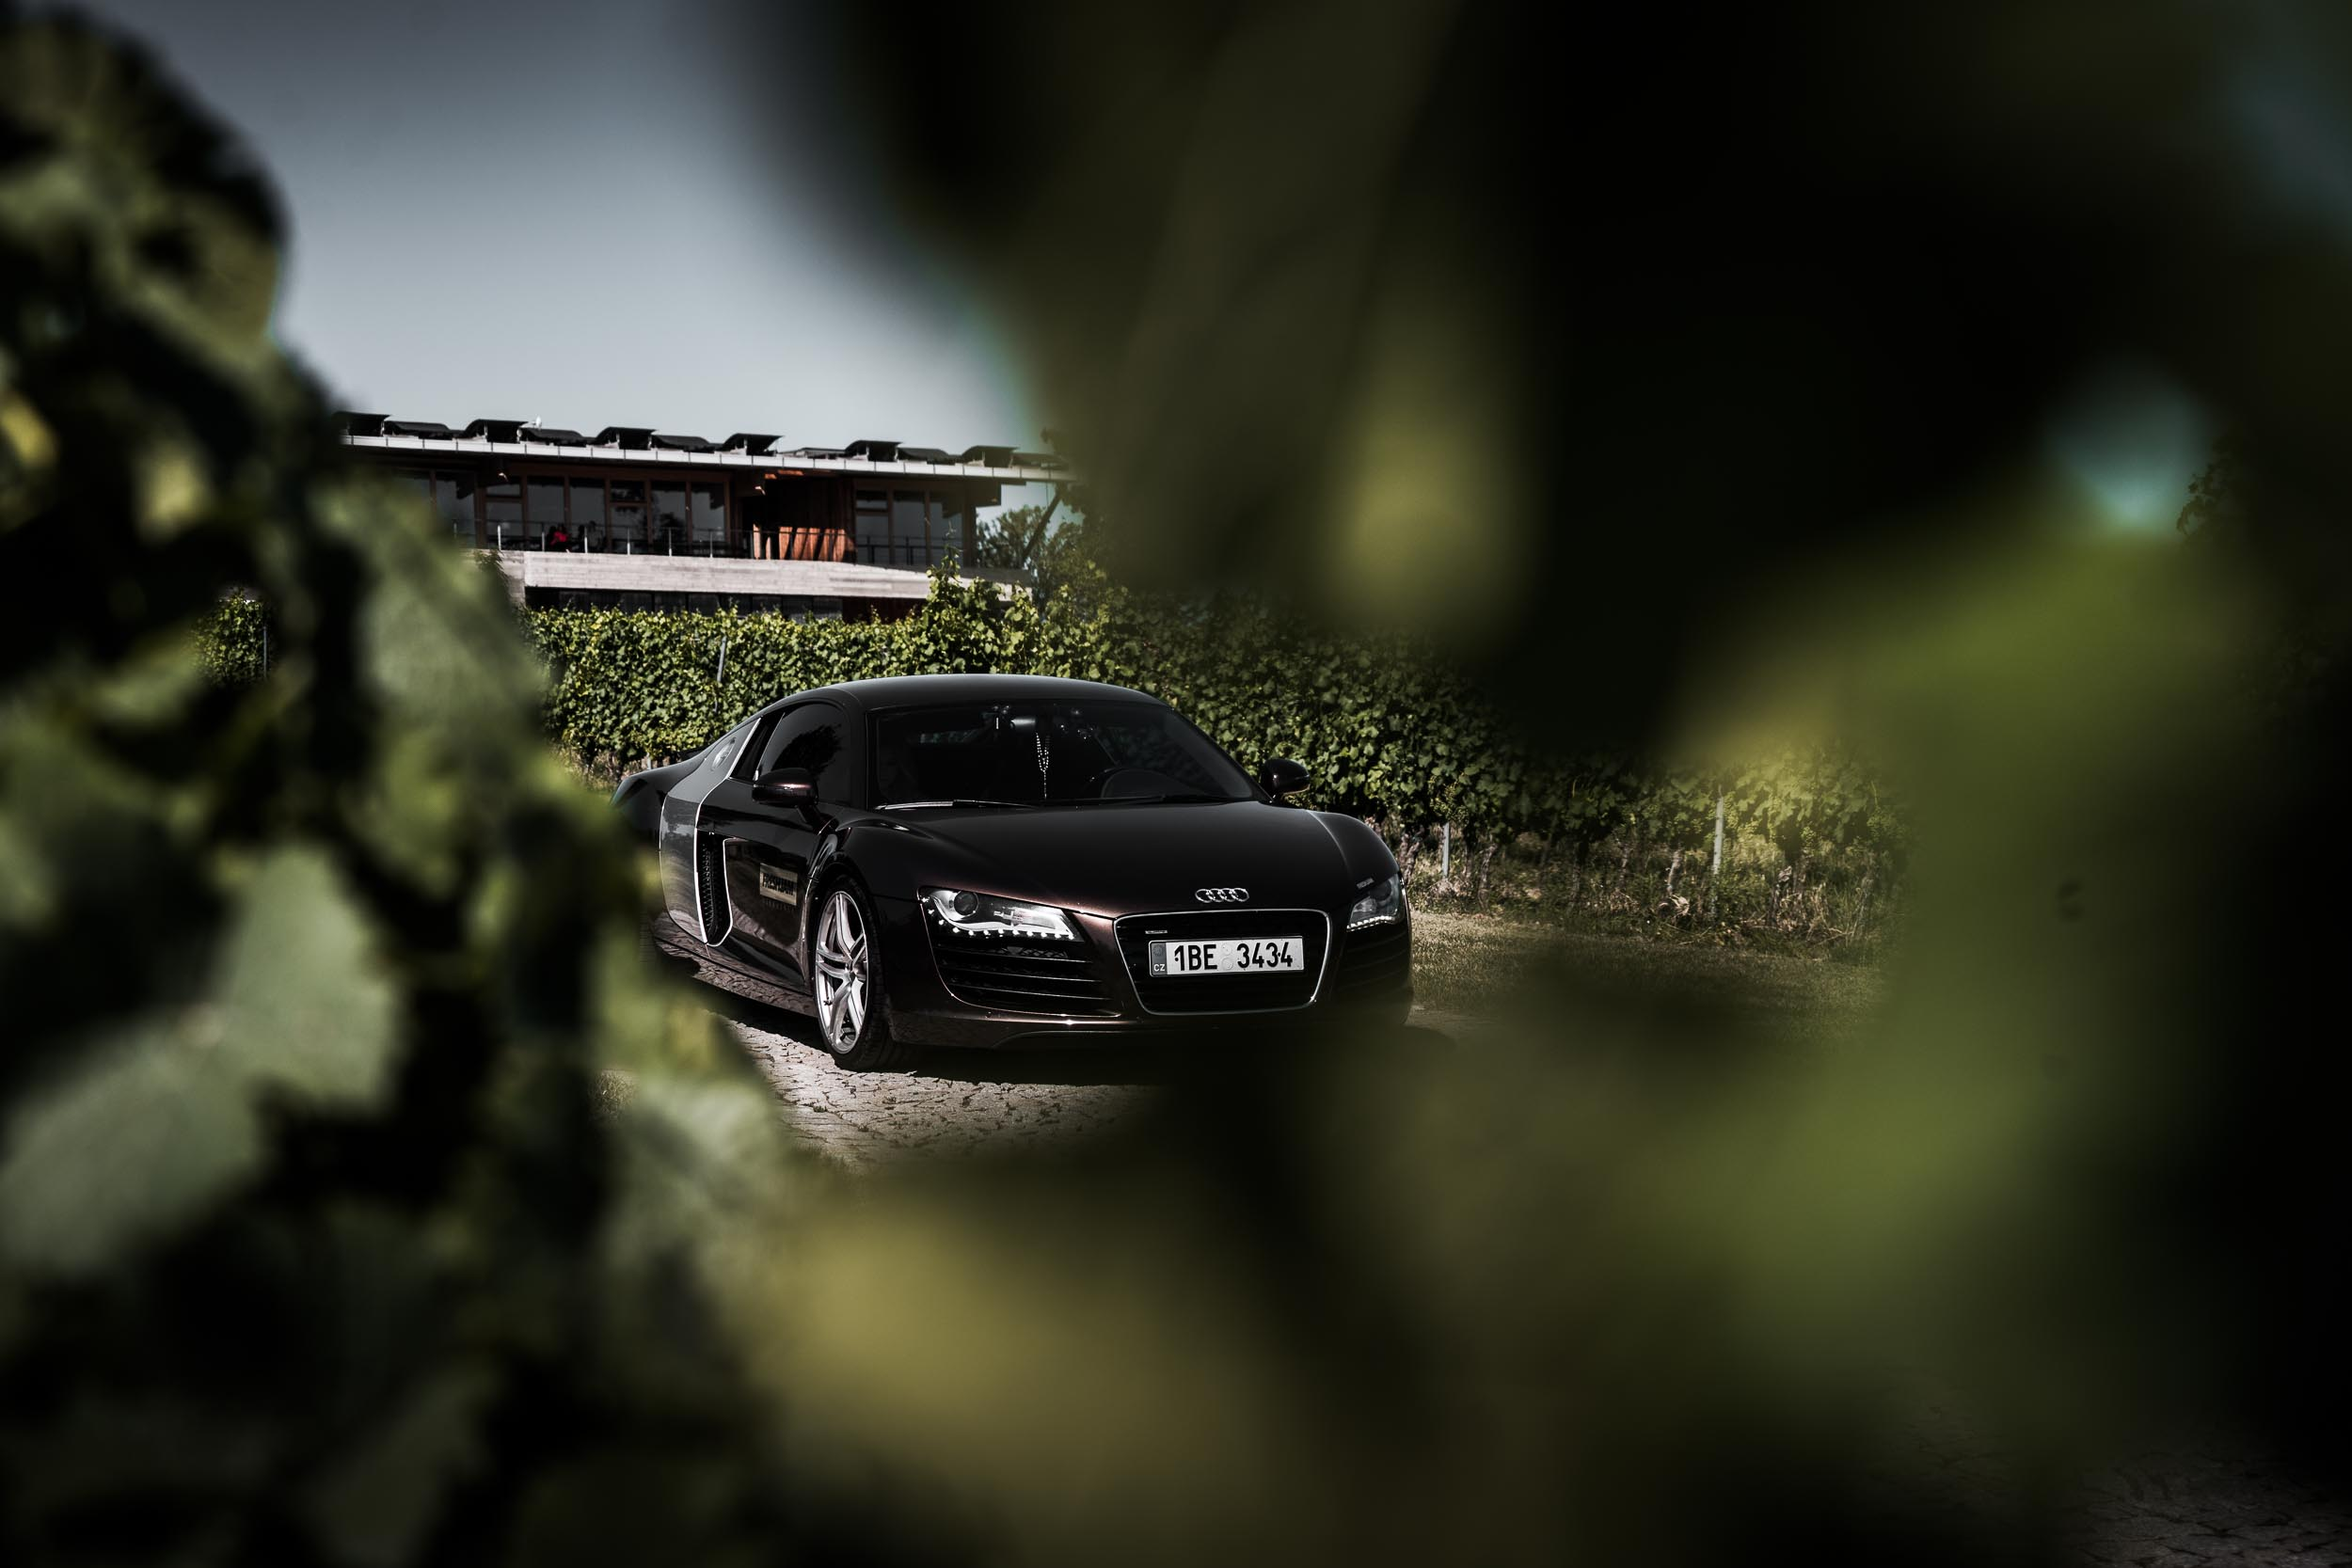 Audi R8 Wallpaper Vineyard